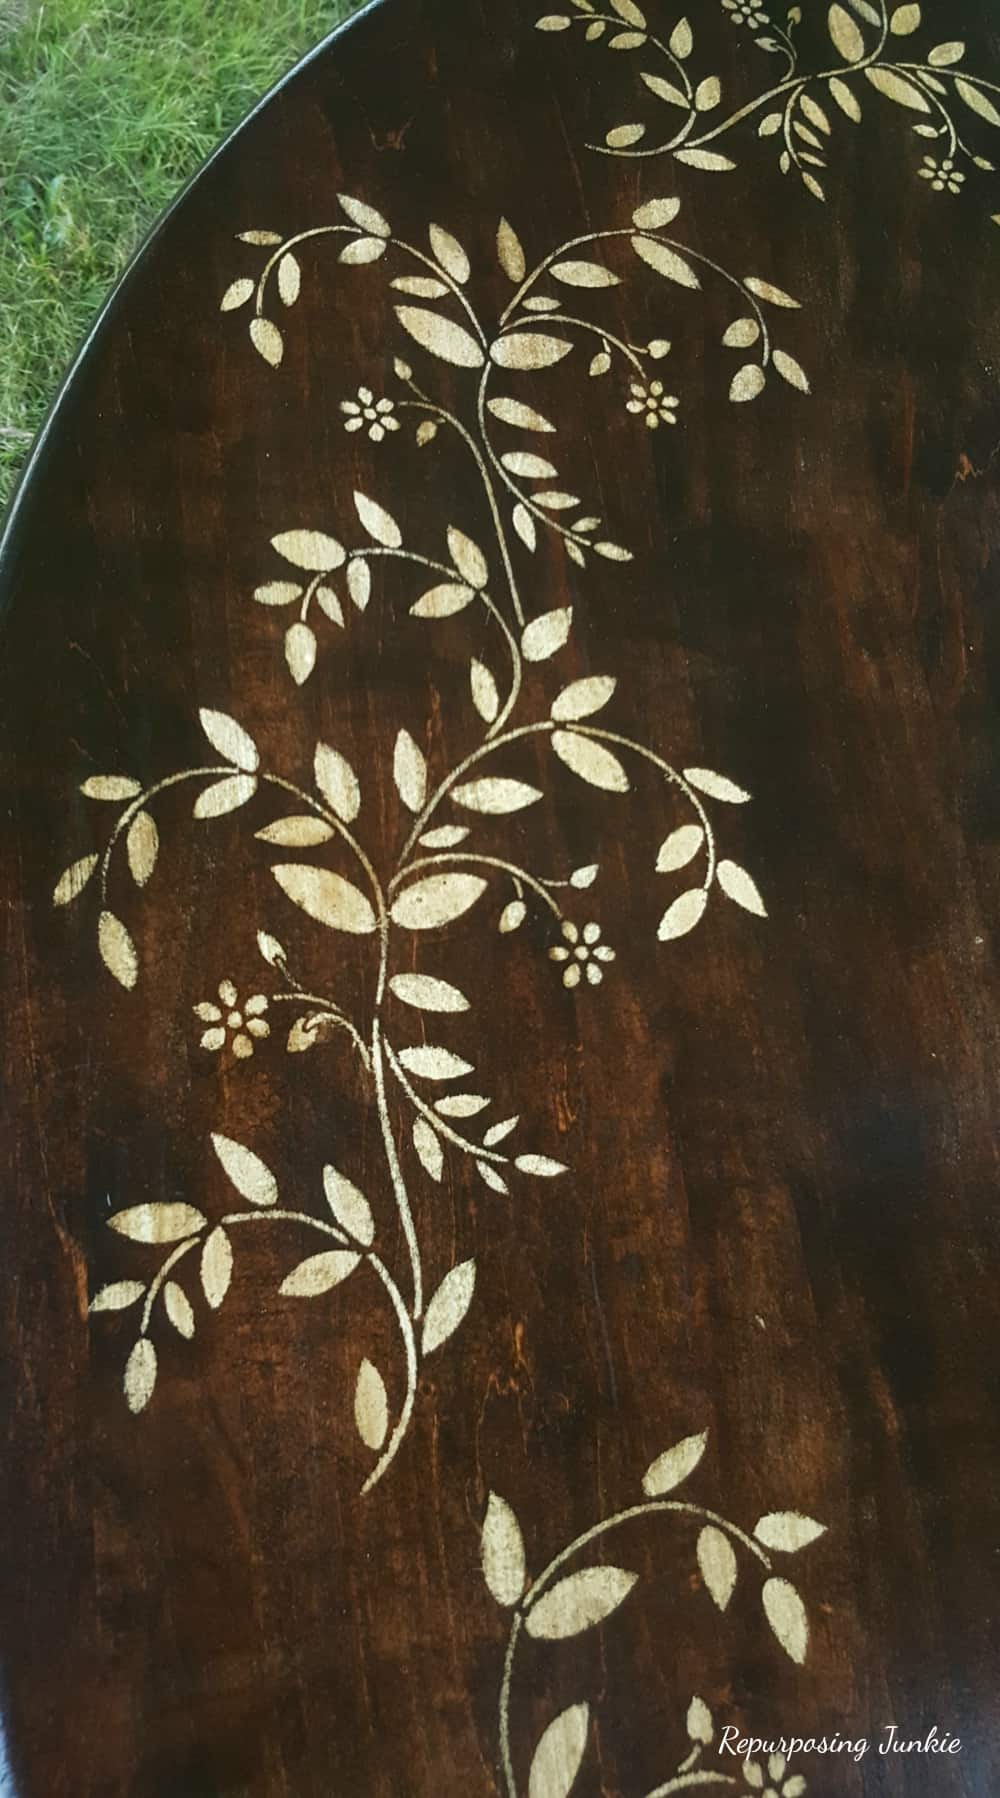 Kitchen Table Stained and Stenciled